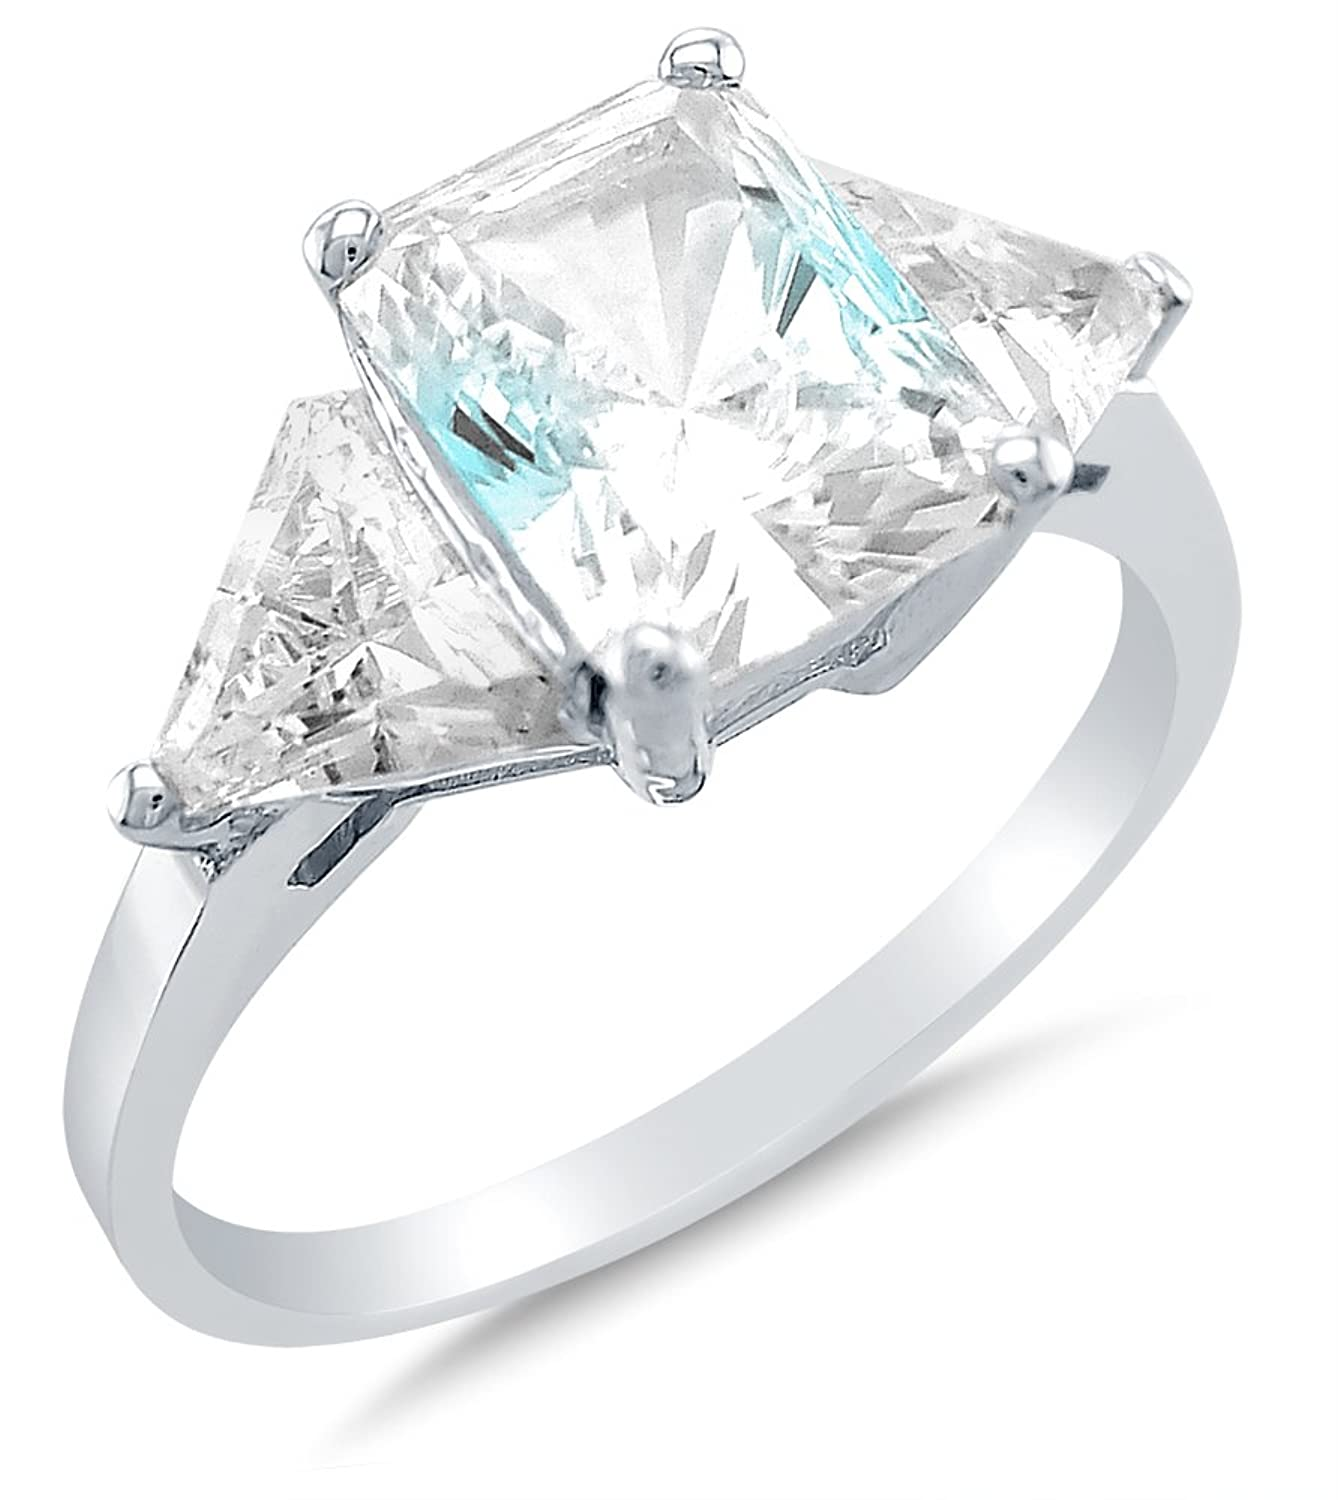 diamond cut platinum side with emerald in center stone engagement rings sides stones pear white ring ct three shape